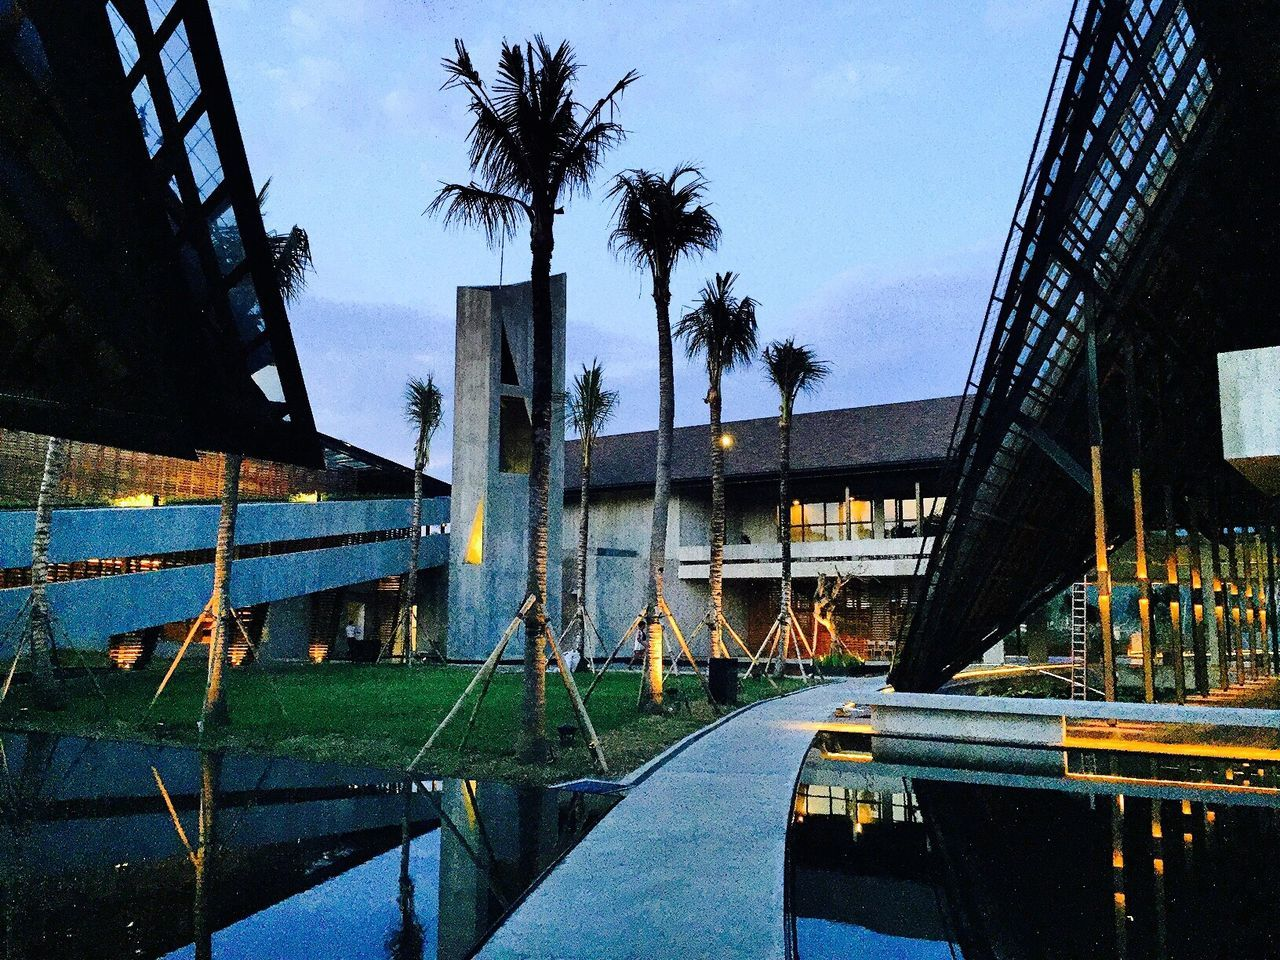 architecture, built structure, day, swimming pool, outdoors, building exterior, water, tree, sky, no people, palm tree, city